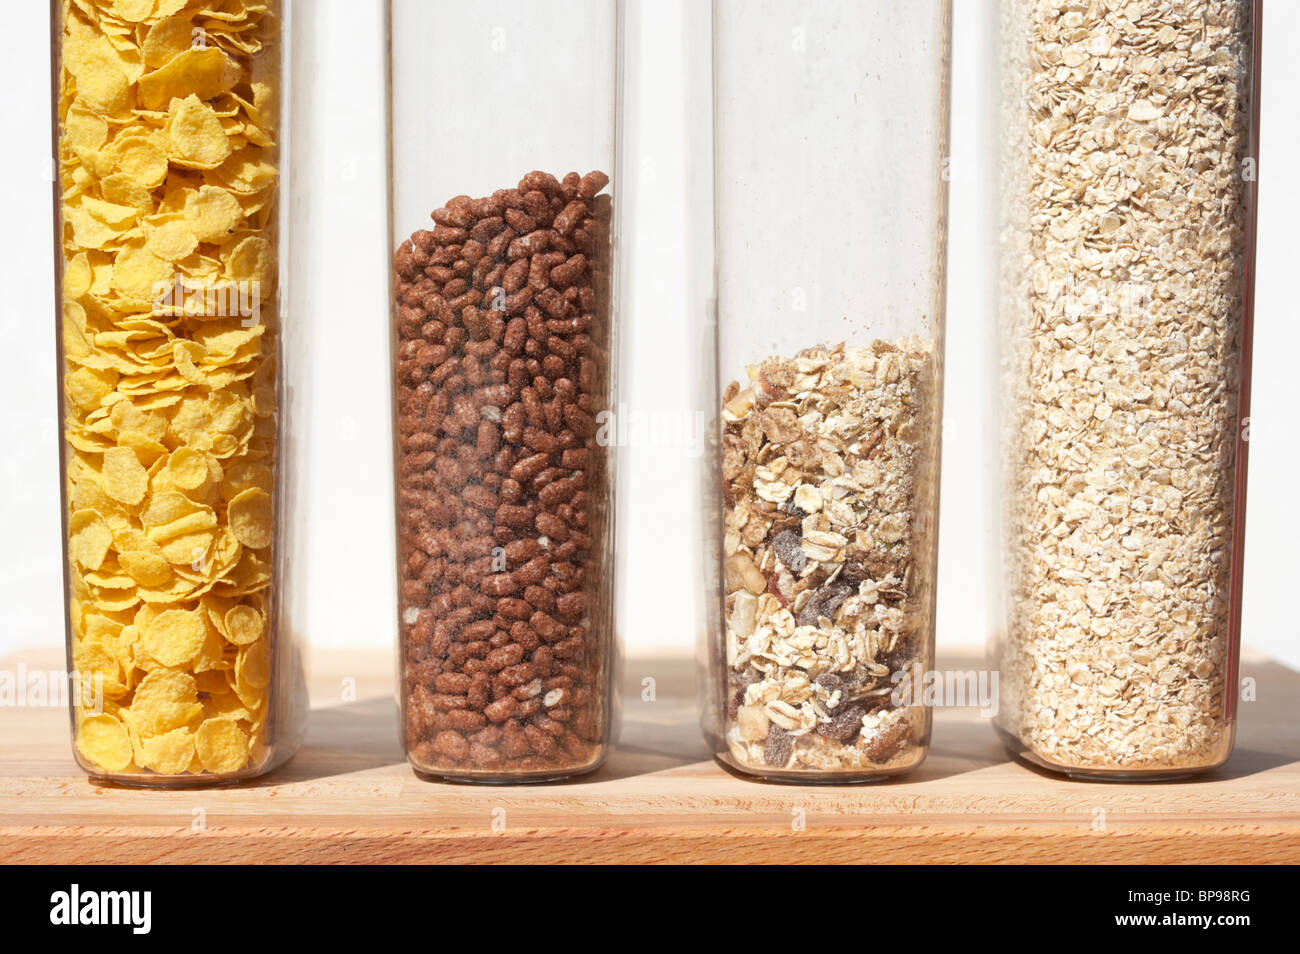 containers of different breakfast cereals including cornflakes coco pops chocolate rice muesli and oats - Stock Image